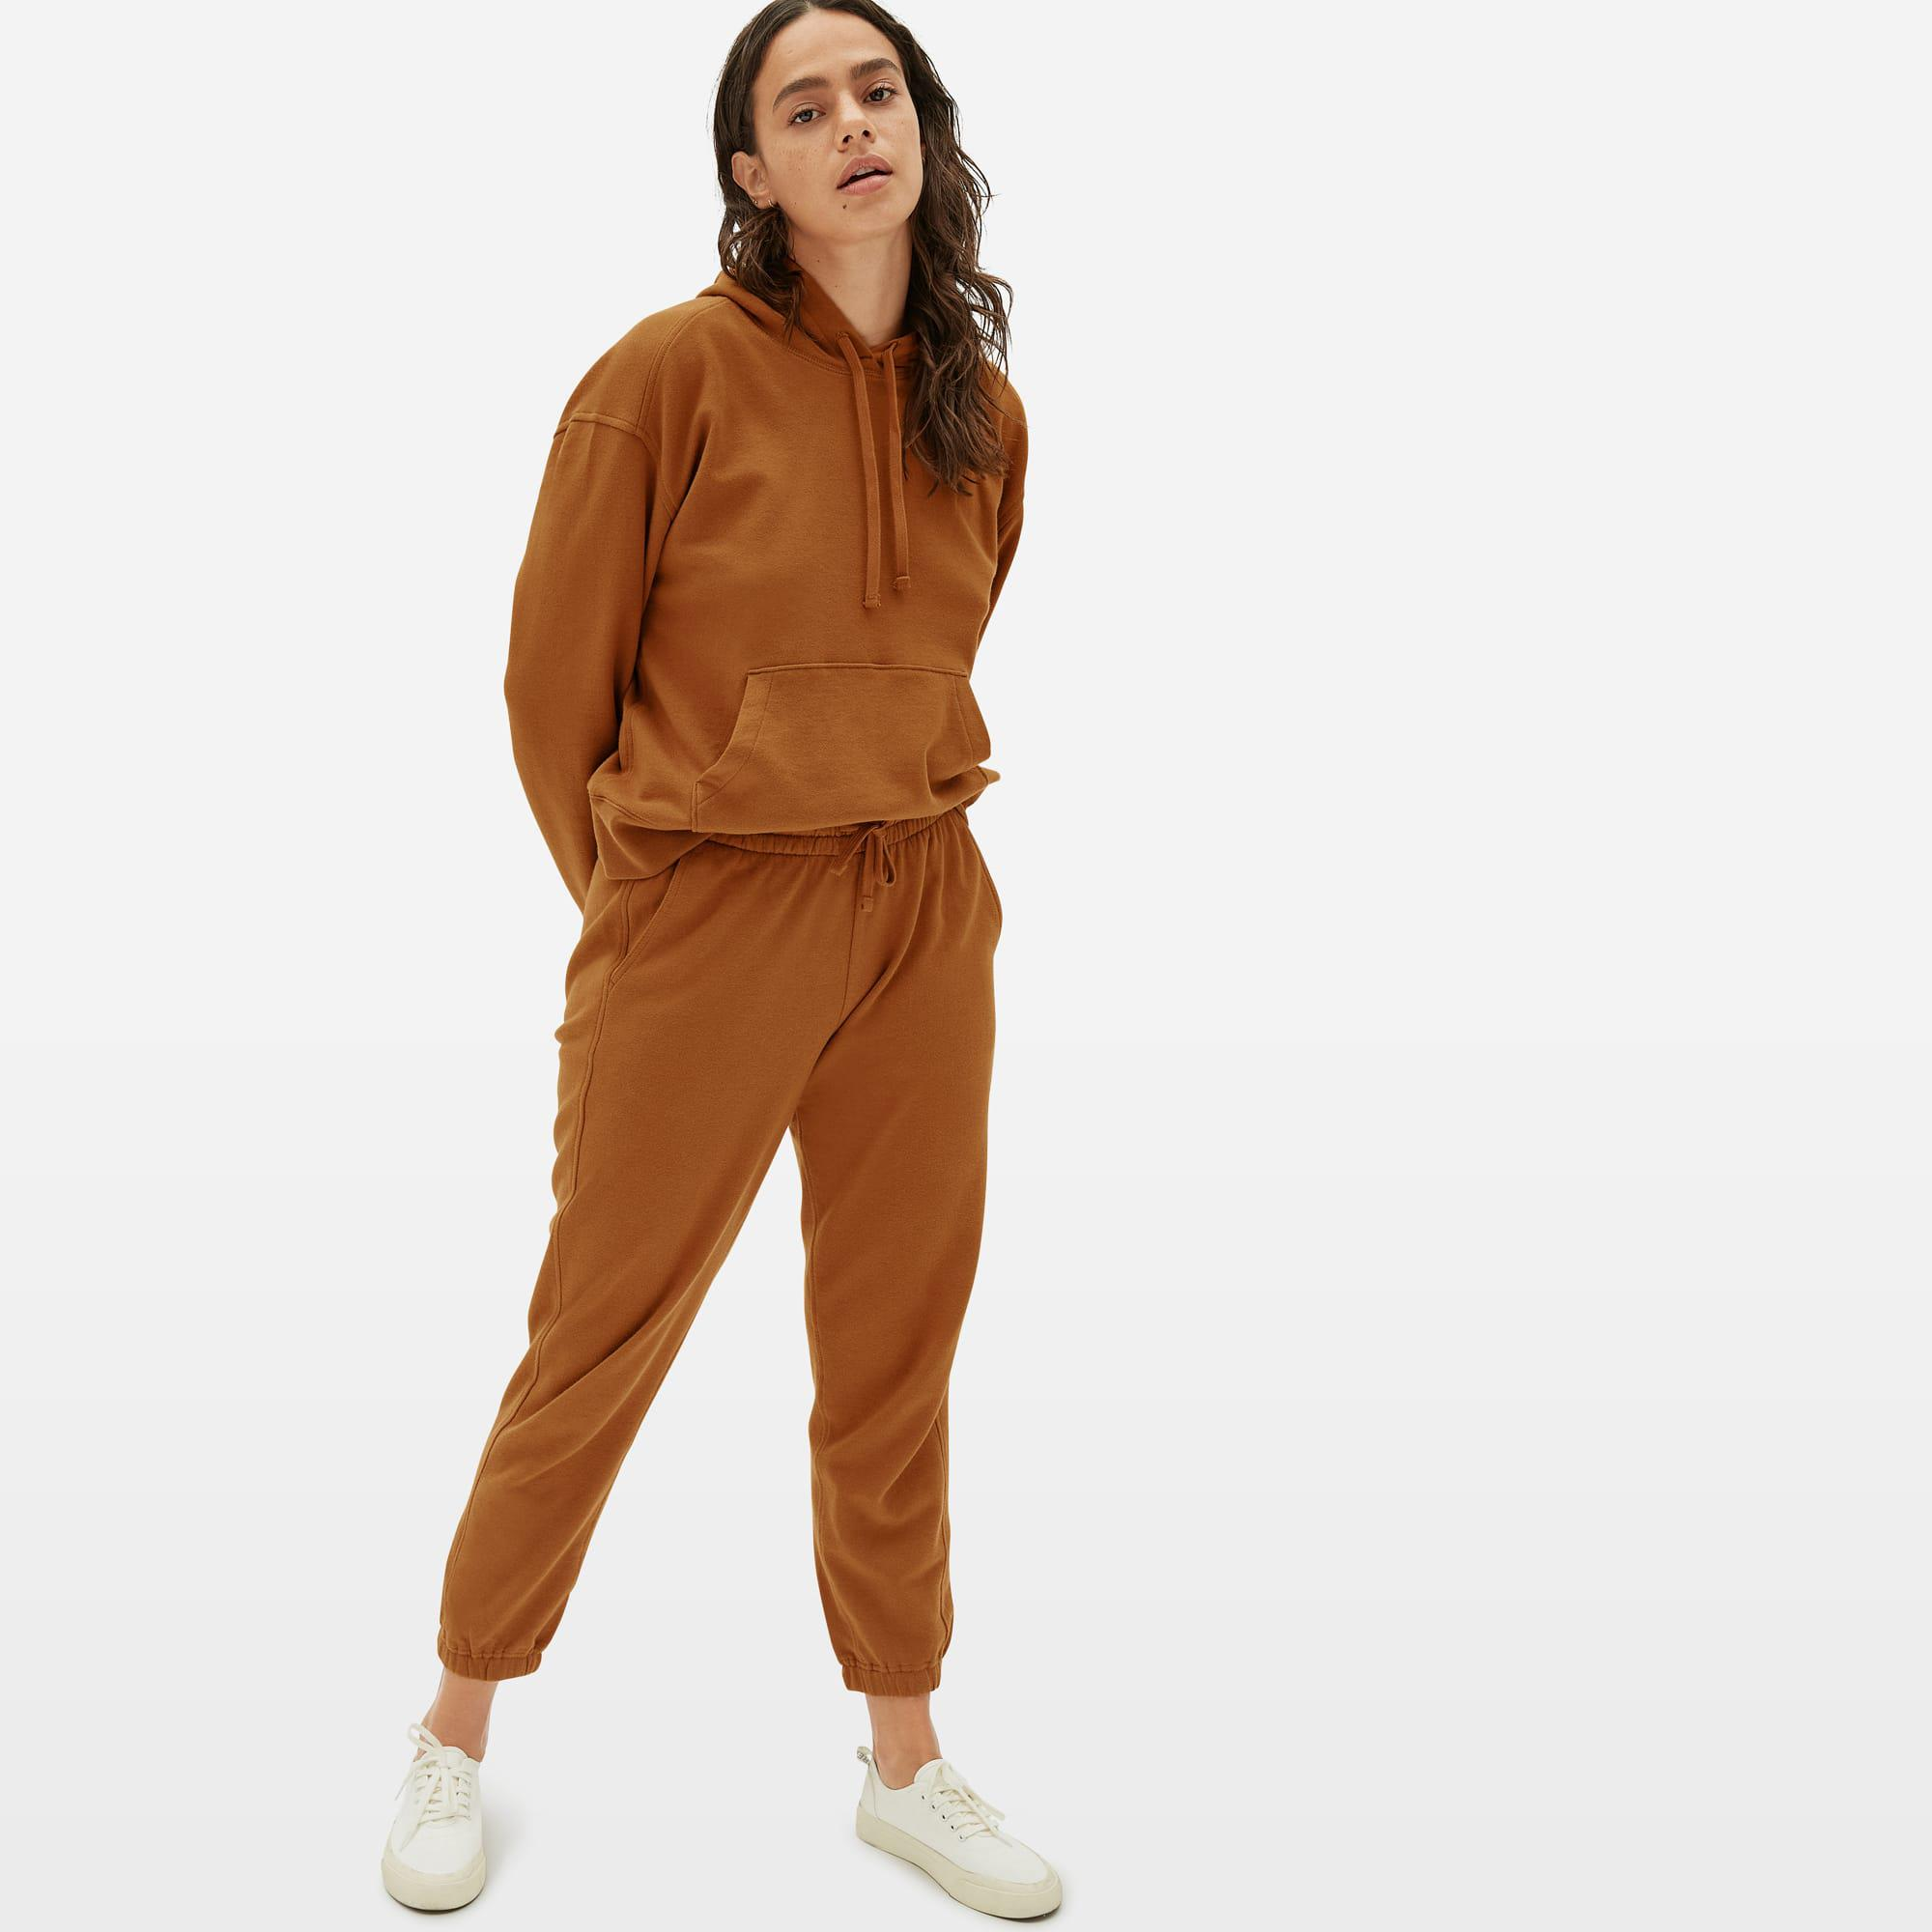 The Lightweight French Terry Jogger